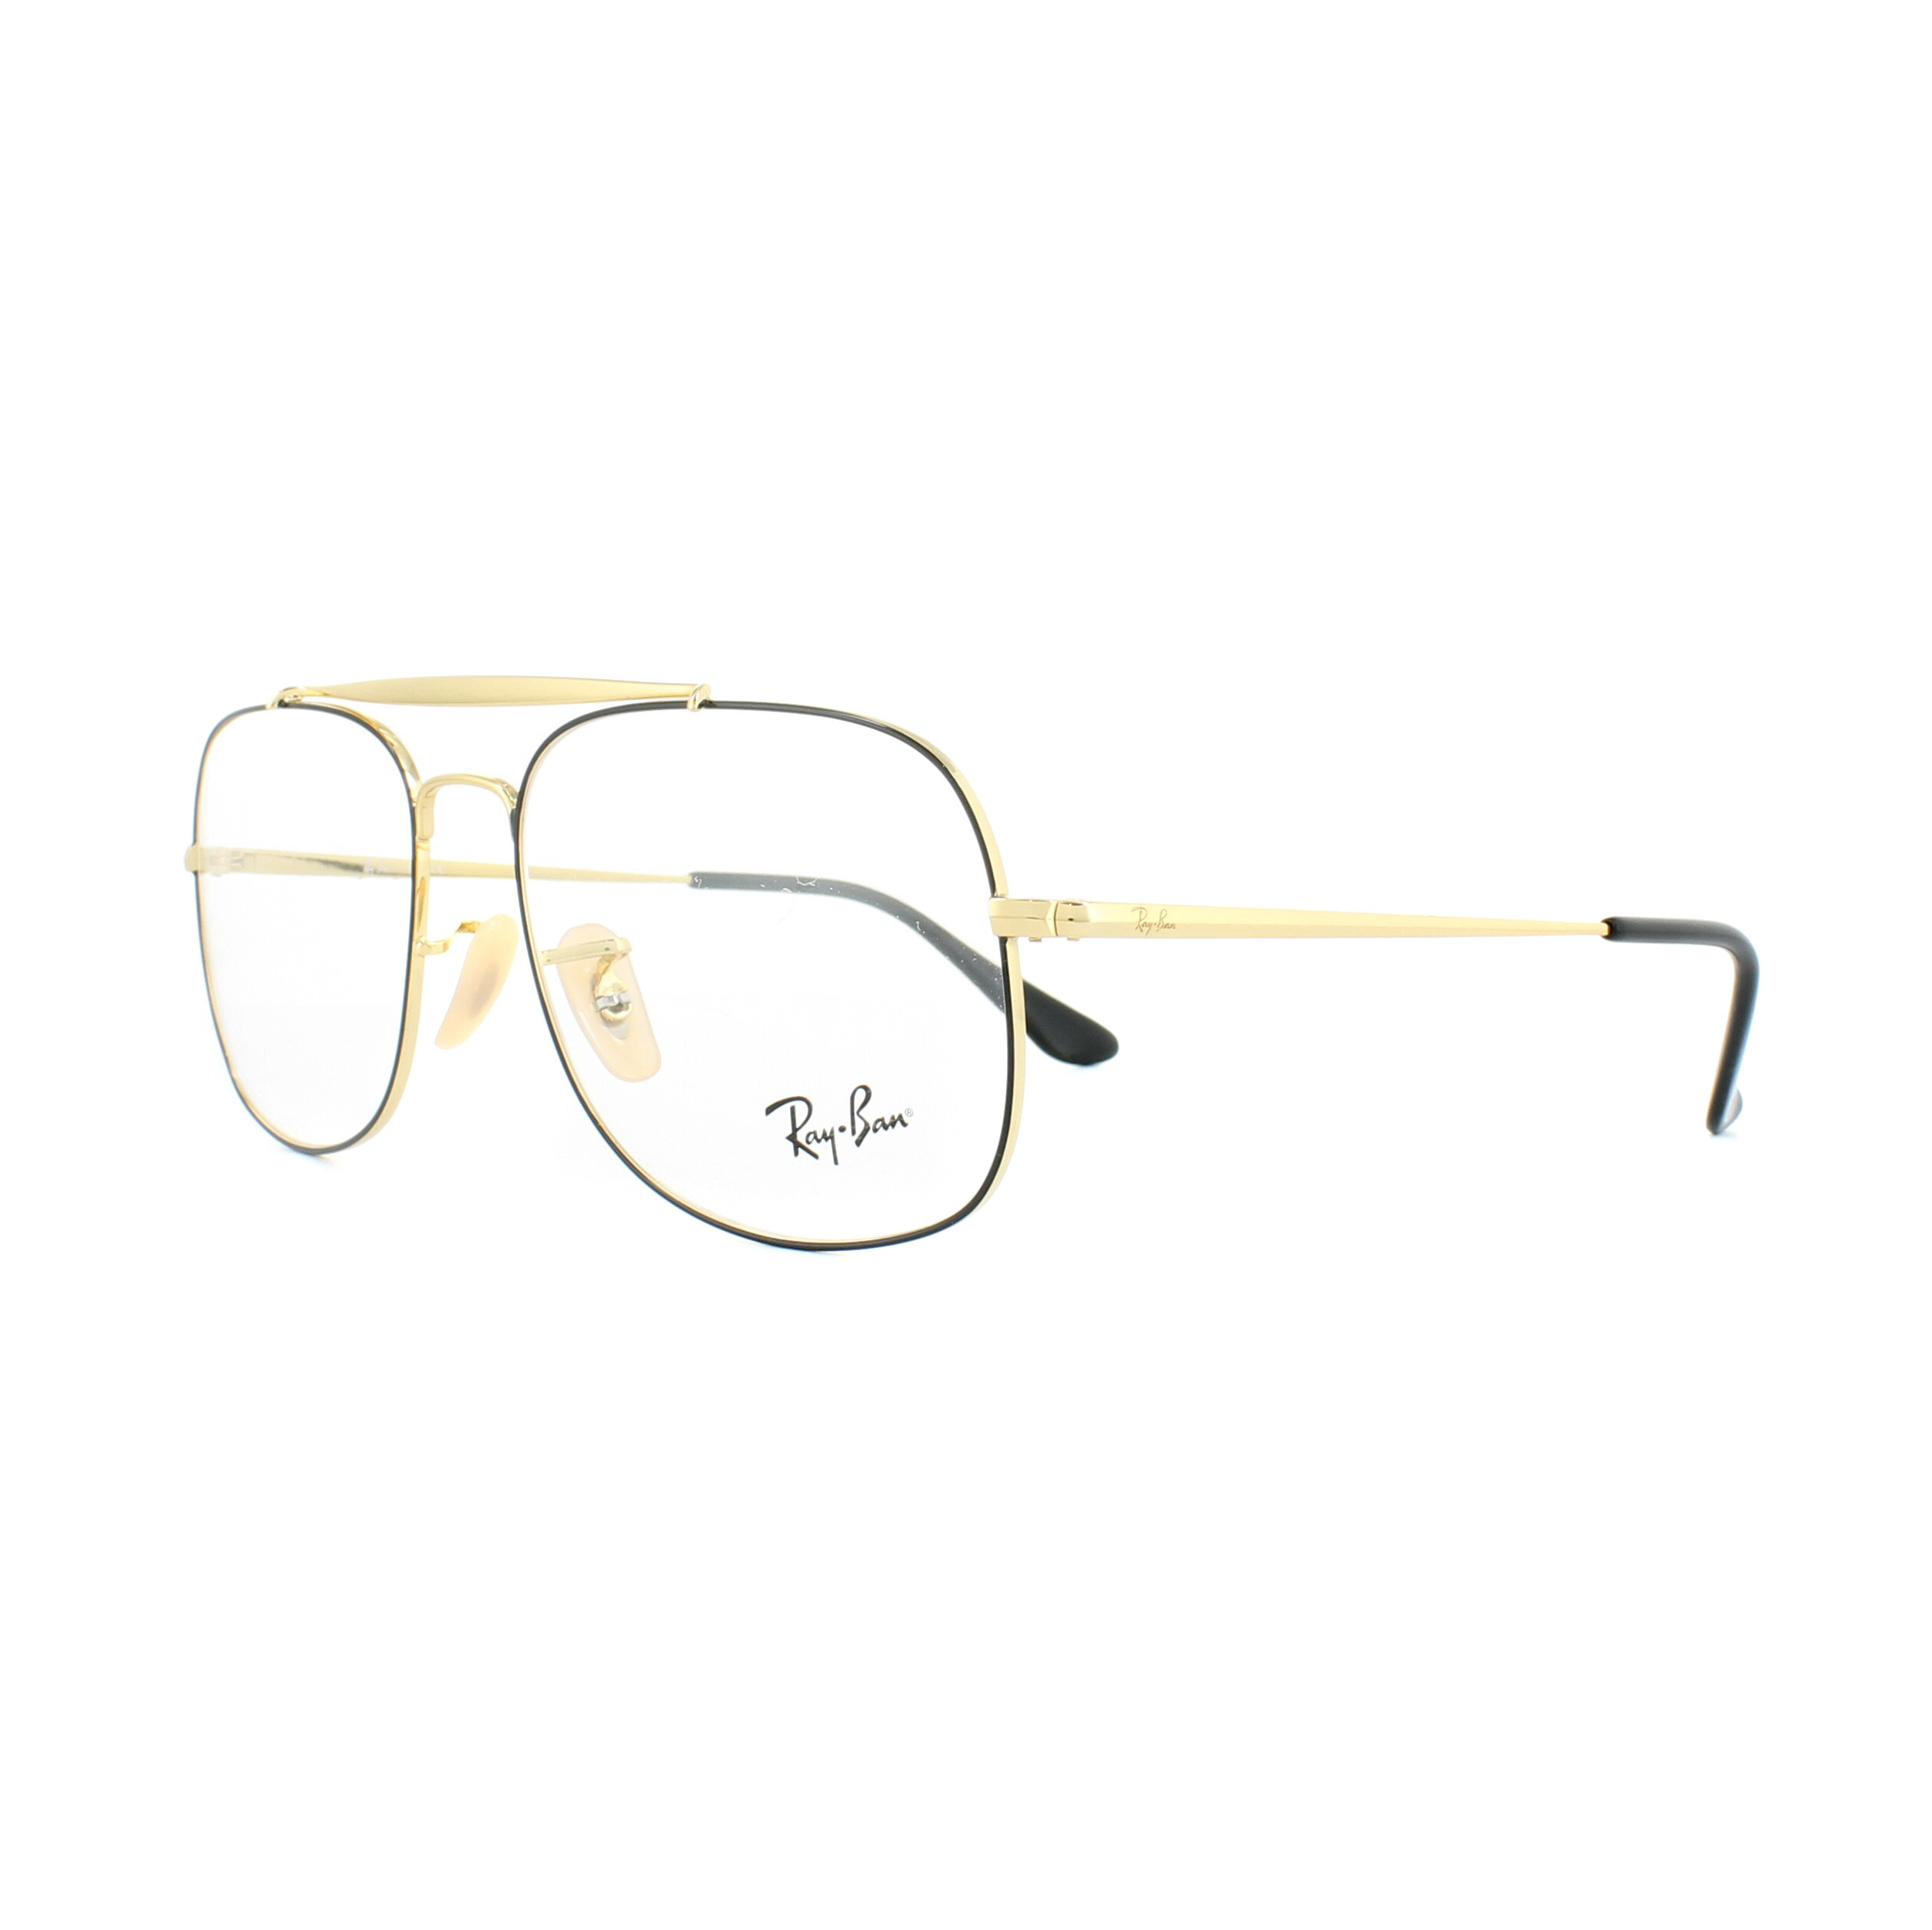 f85a4f3a34 Sentinel Ray-Ban Glasses Frames 6389 The General 2946 Black Gold 57mm Mens